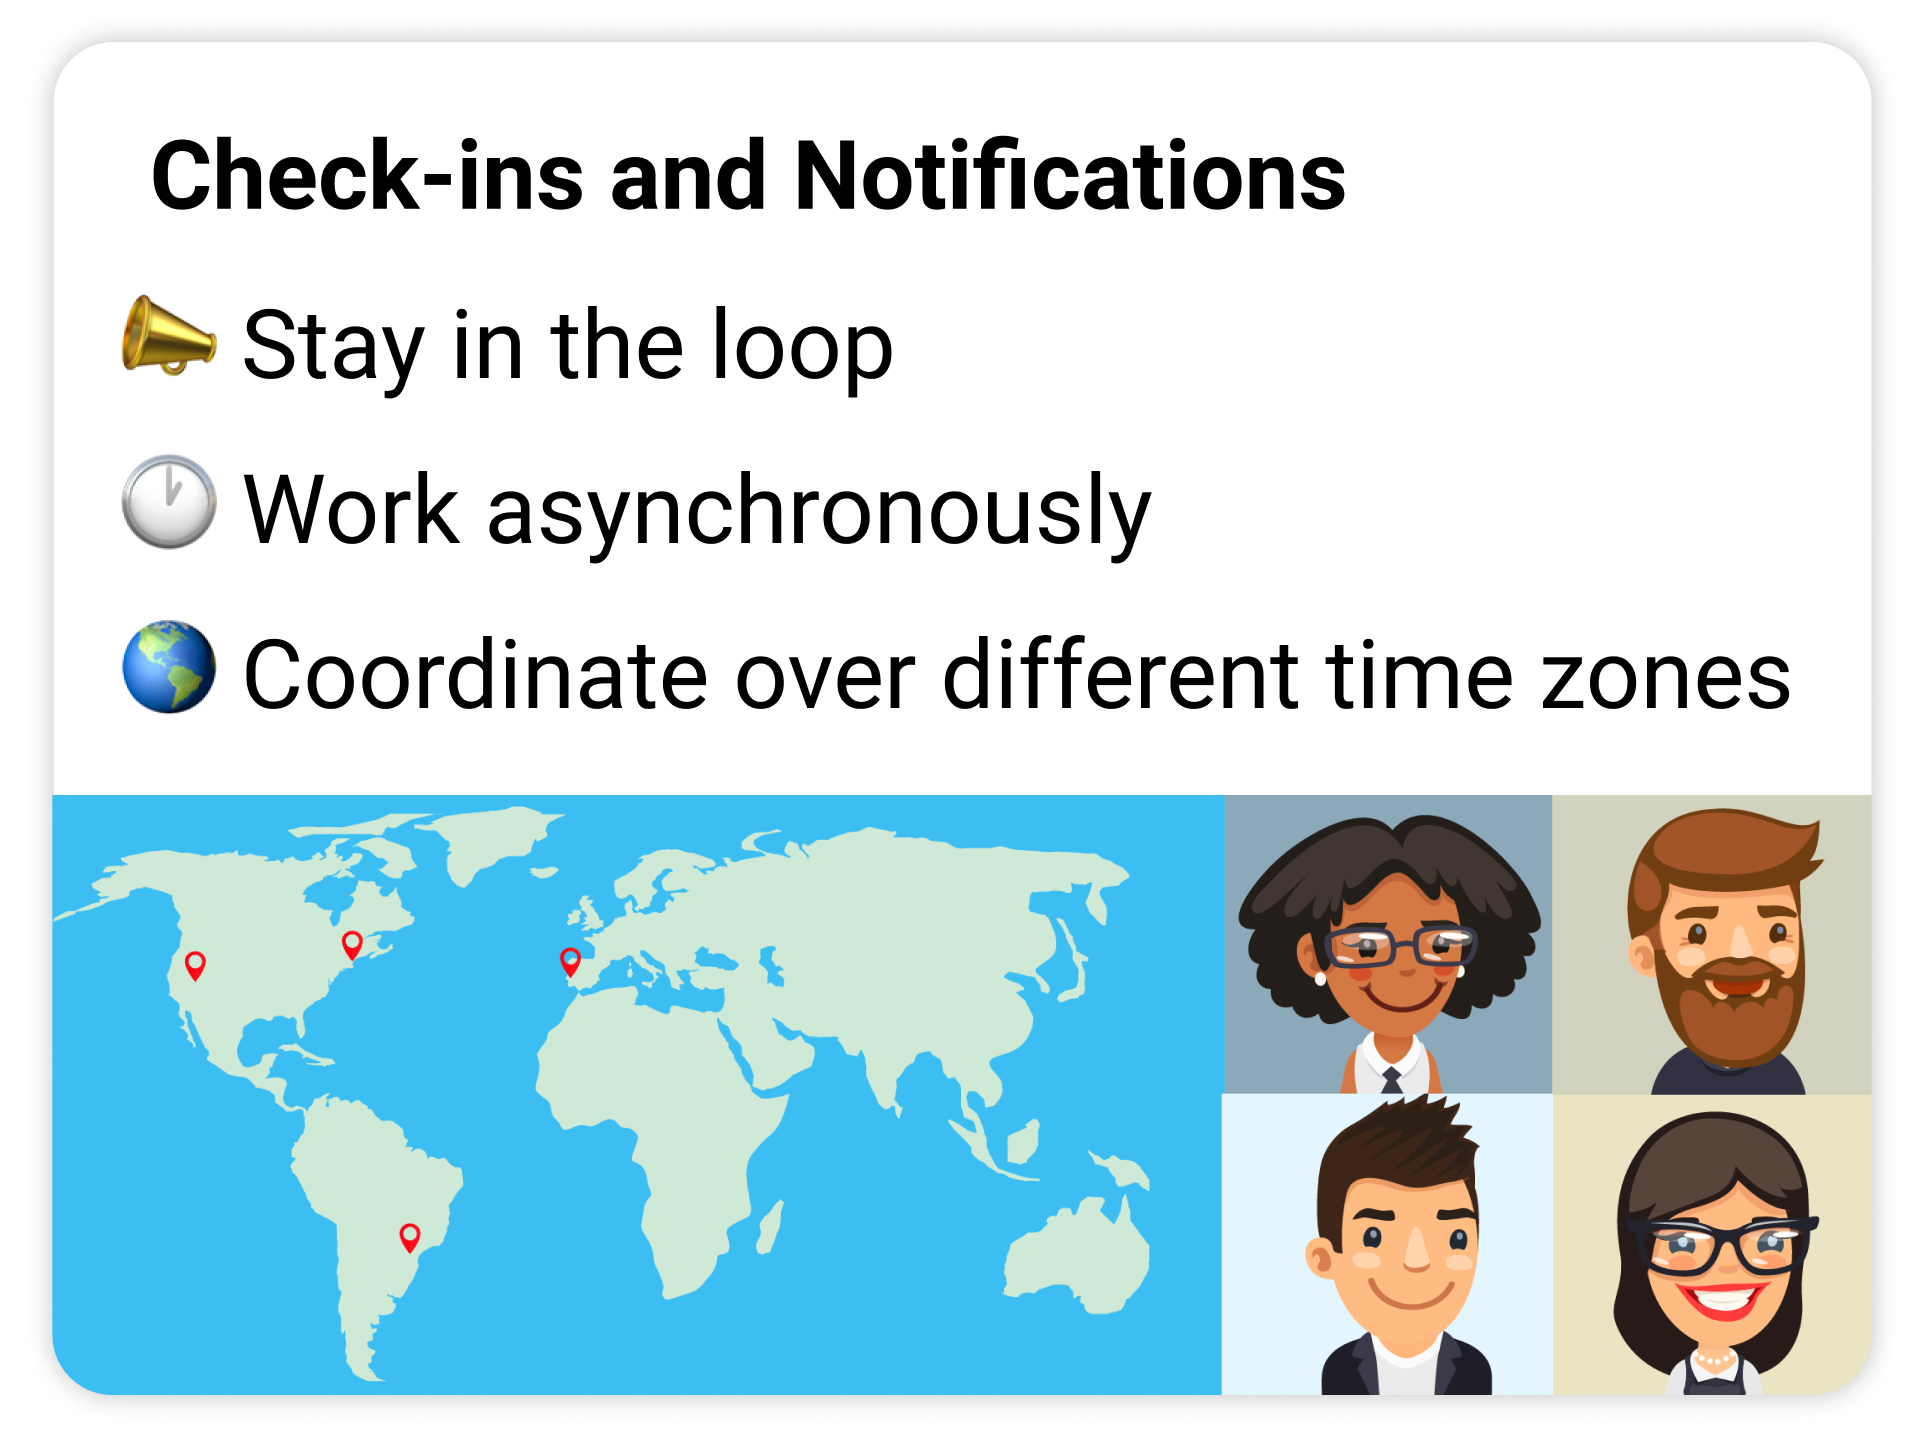 automation enables asynchronous check-ins, notifications